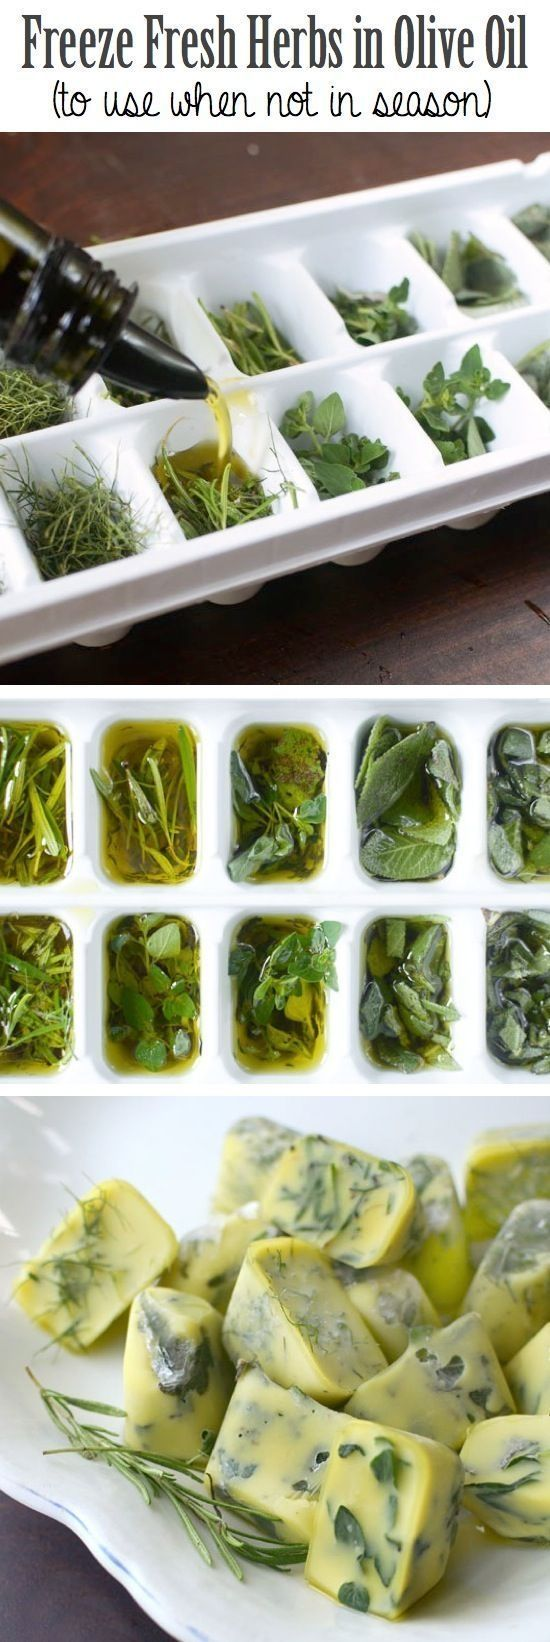 Freeze fresh herbs in olive oil! Now you can easily add the cubes to pasta or potato dishes, stews, soups, or for roasting onions, garlic, and other veggies.. by So Bai